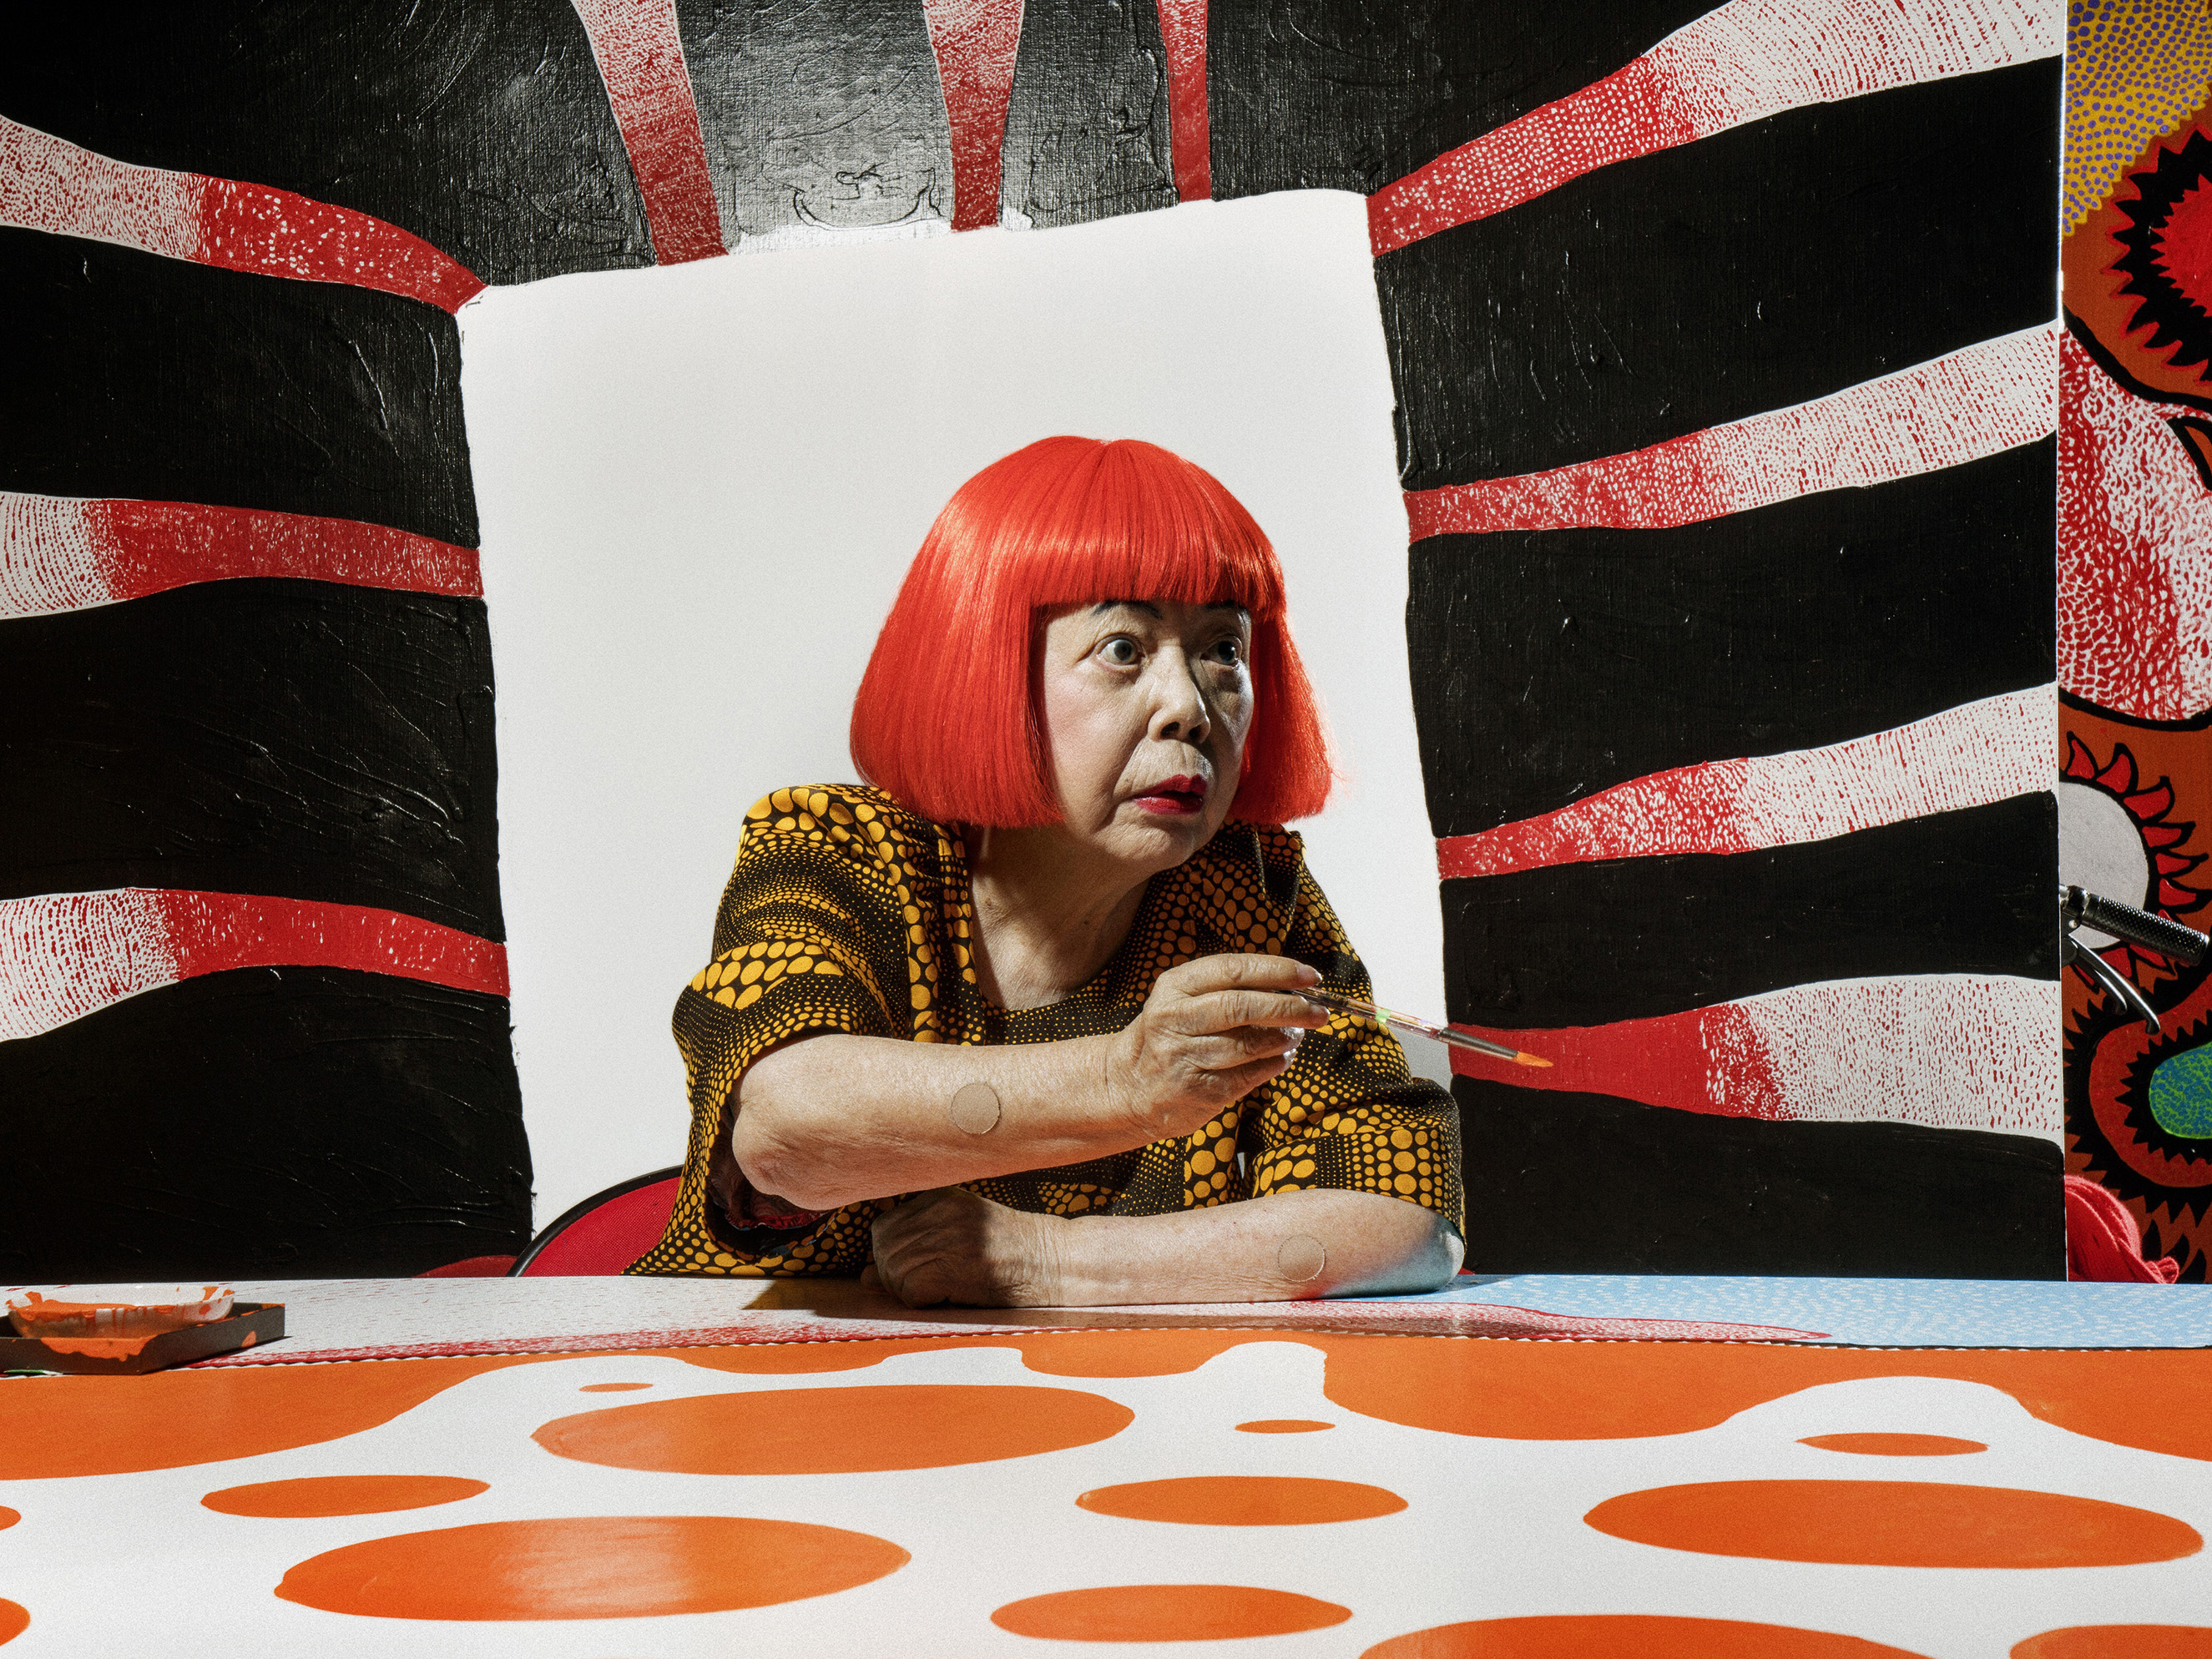 Yayoi Kusama from  The 100 Most Influential People.